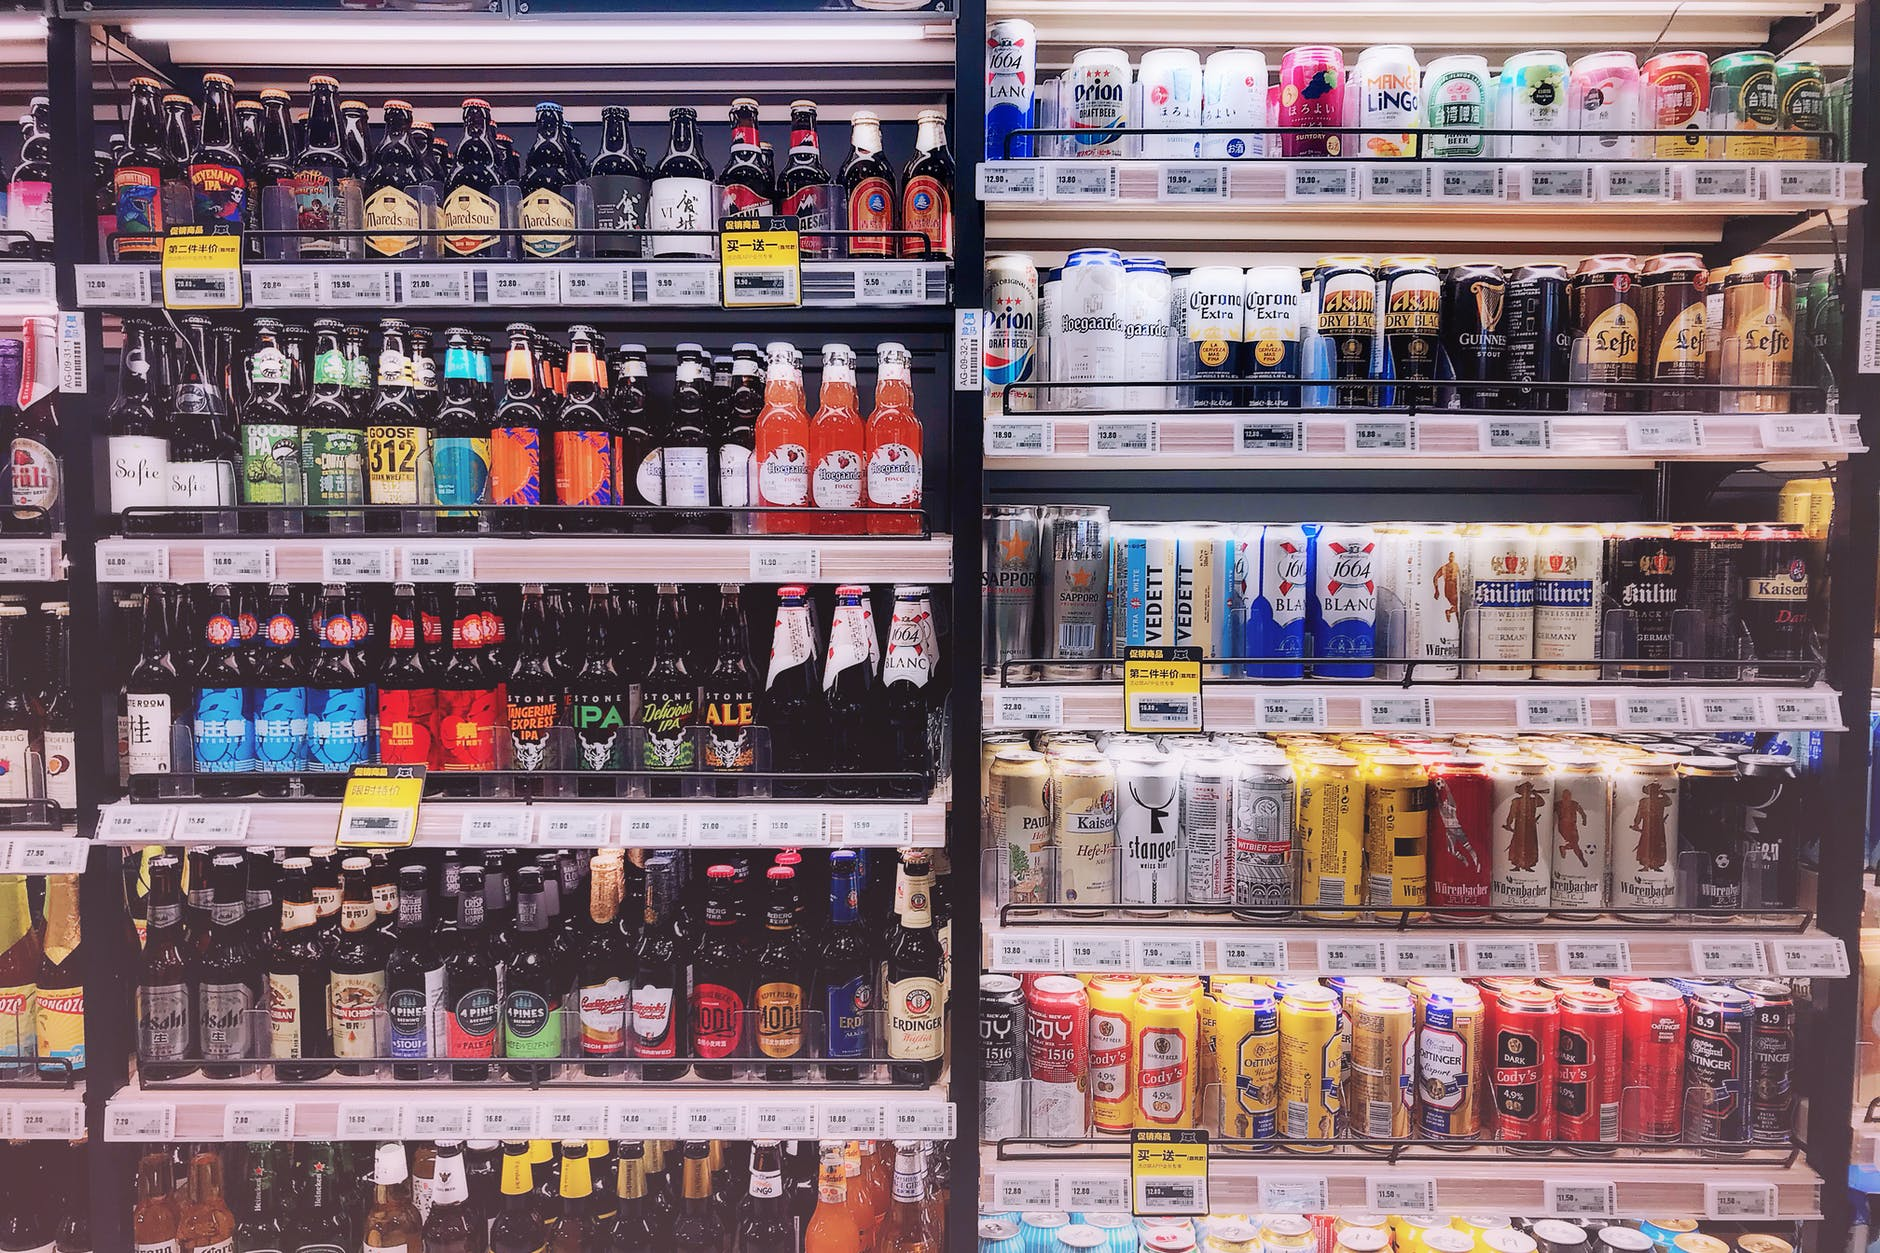 The Impact of COVID-19 on the Beverage Market